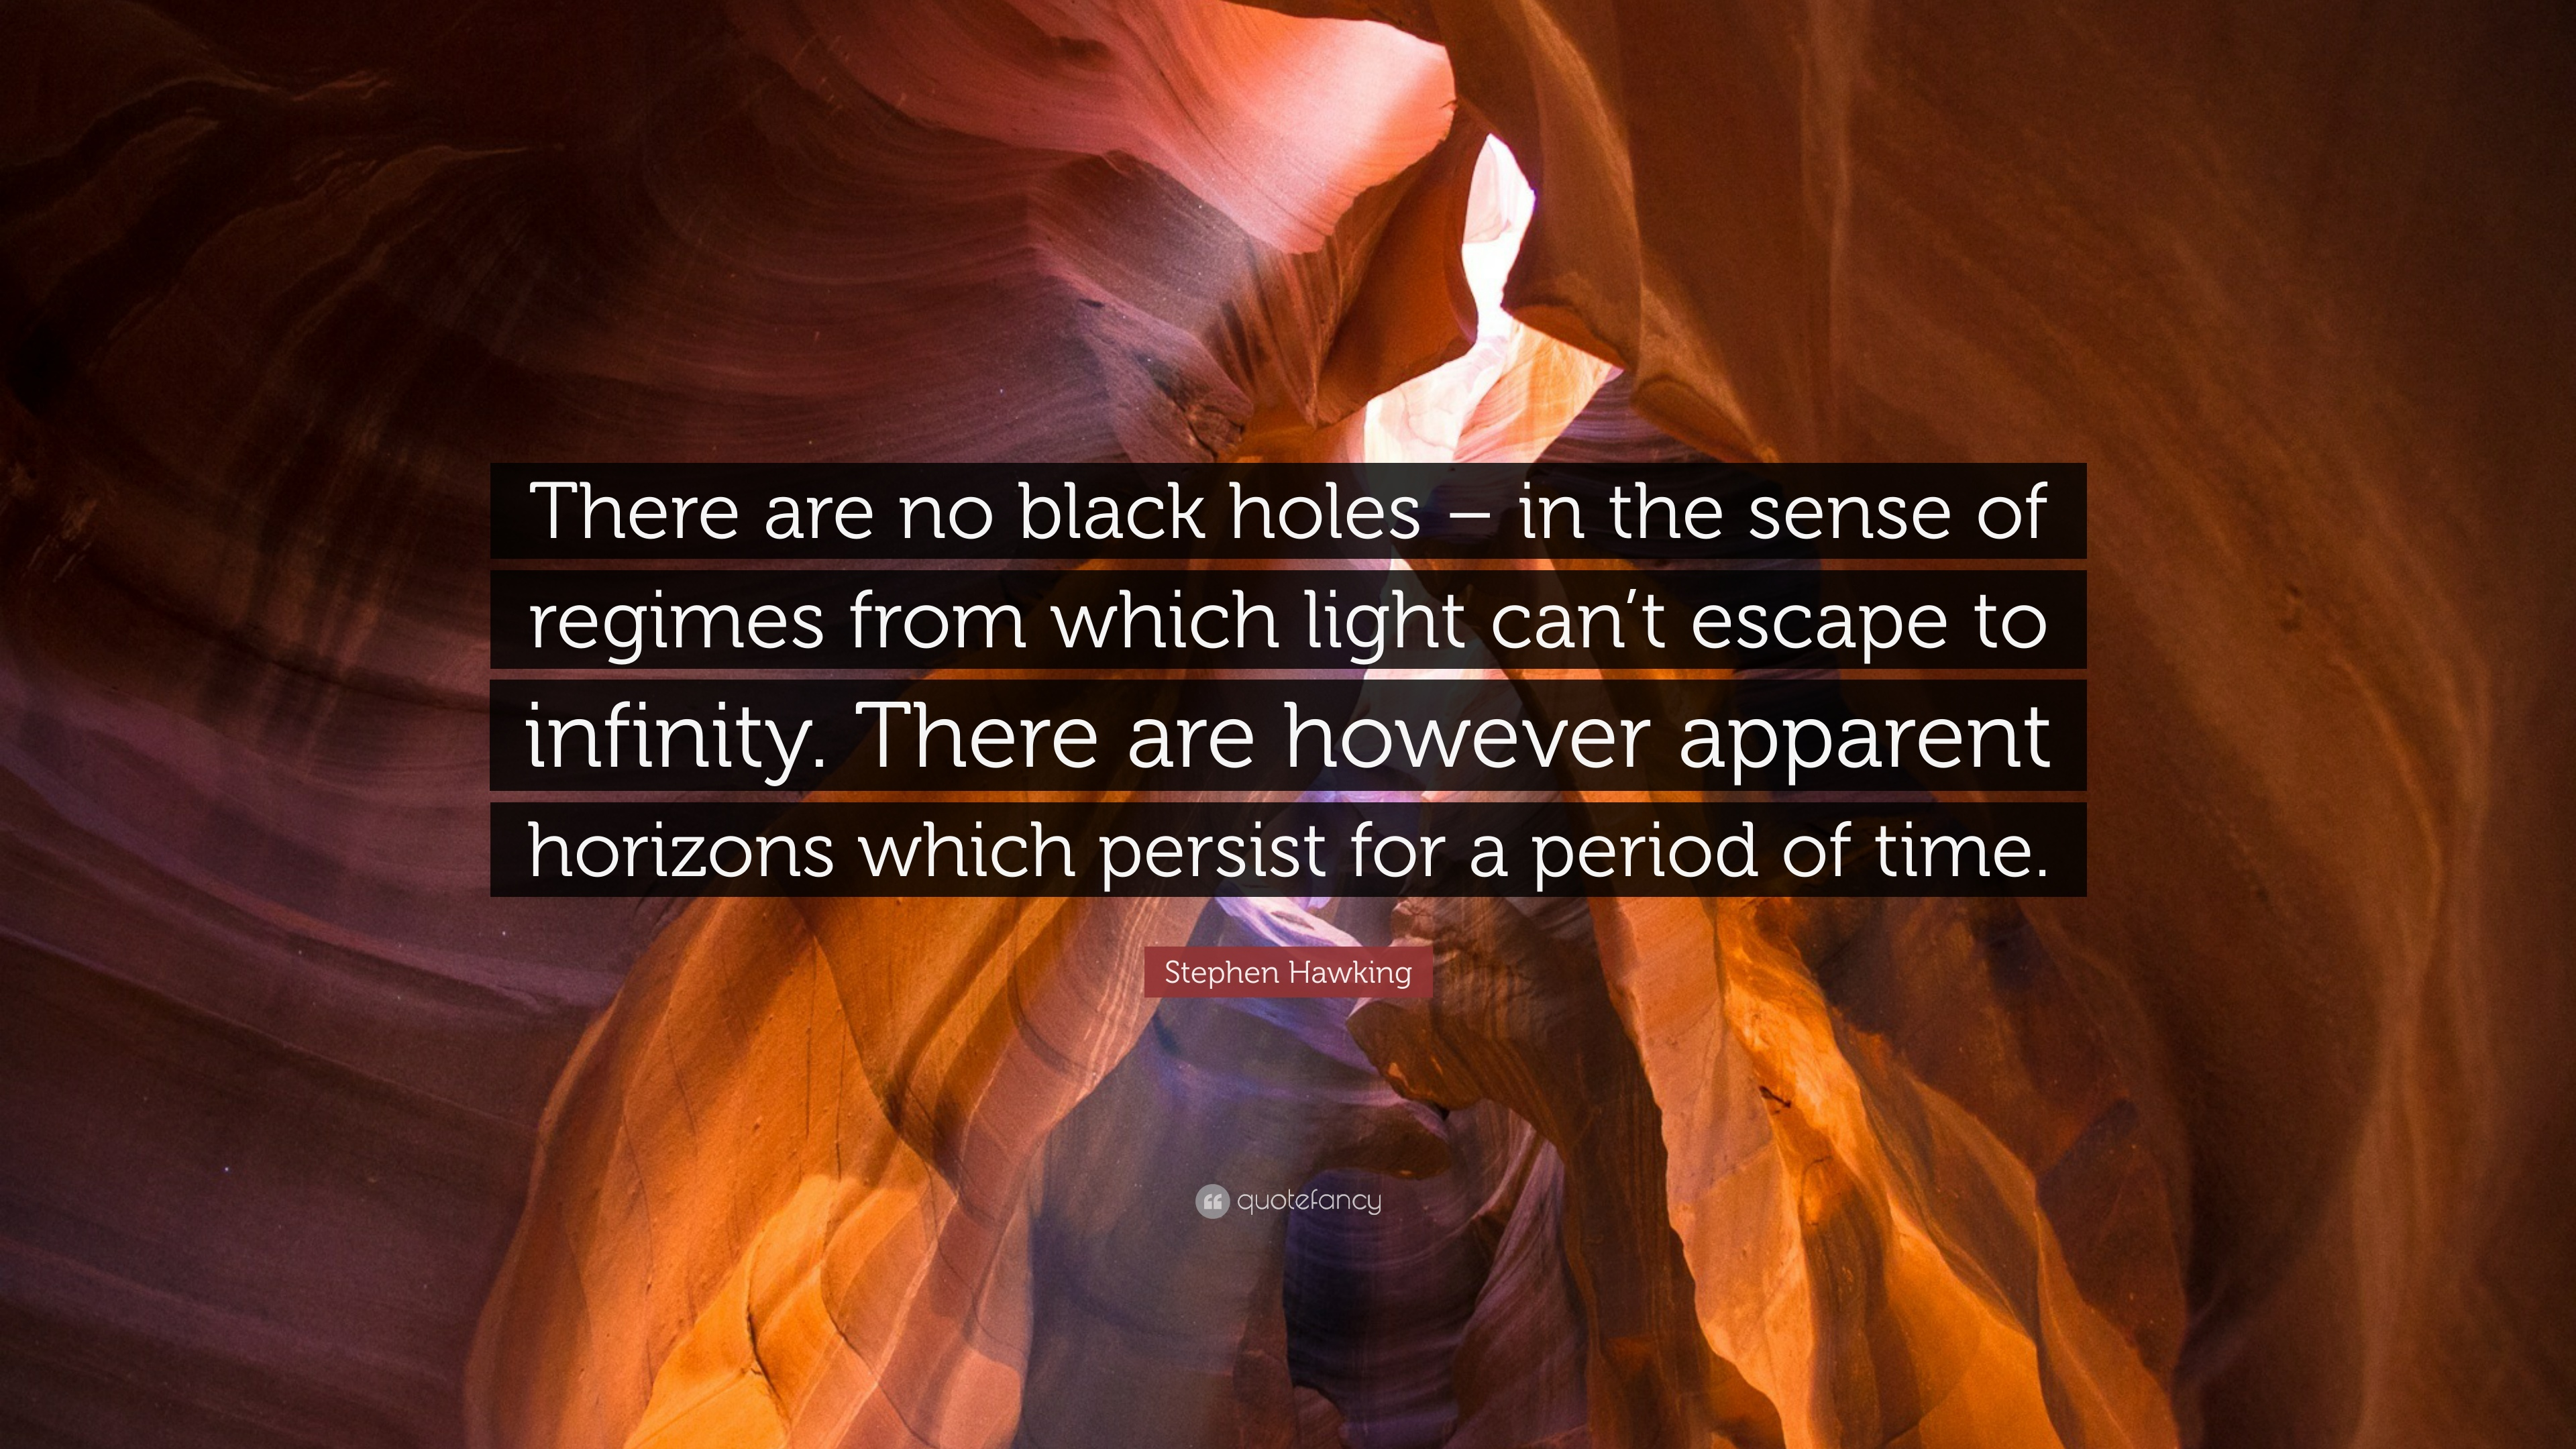 What is the importance of black holes?